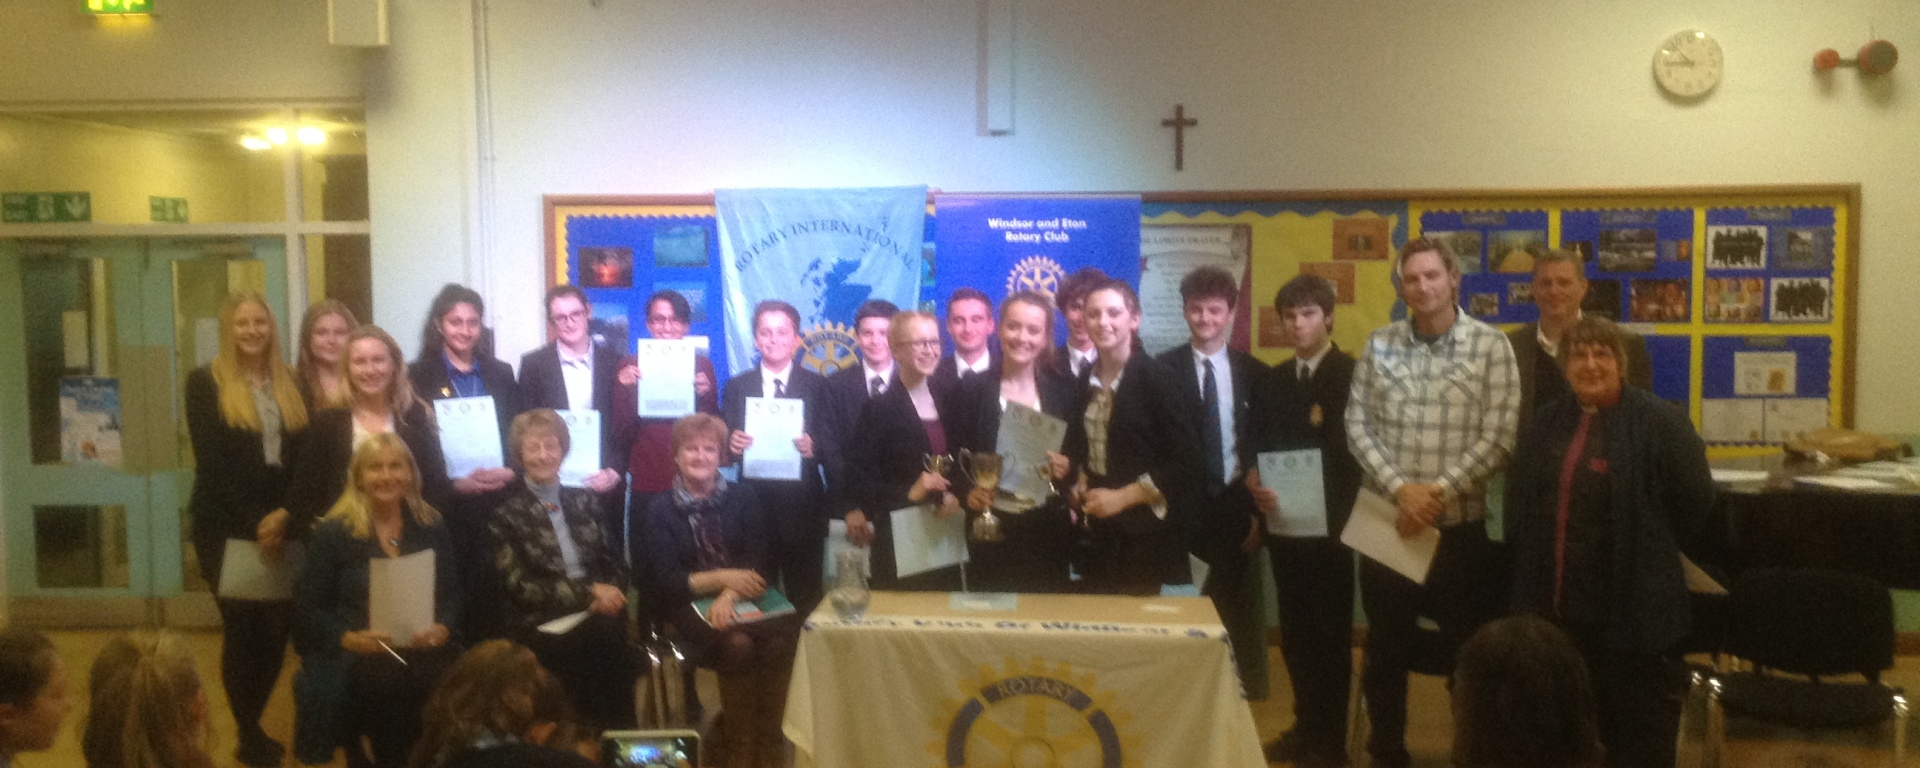 Youth Speaks Senior Windsor and Eton Contestants and Winners